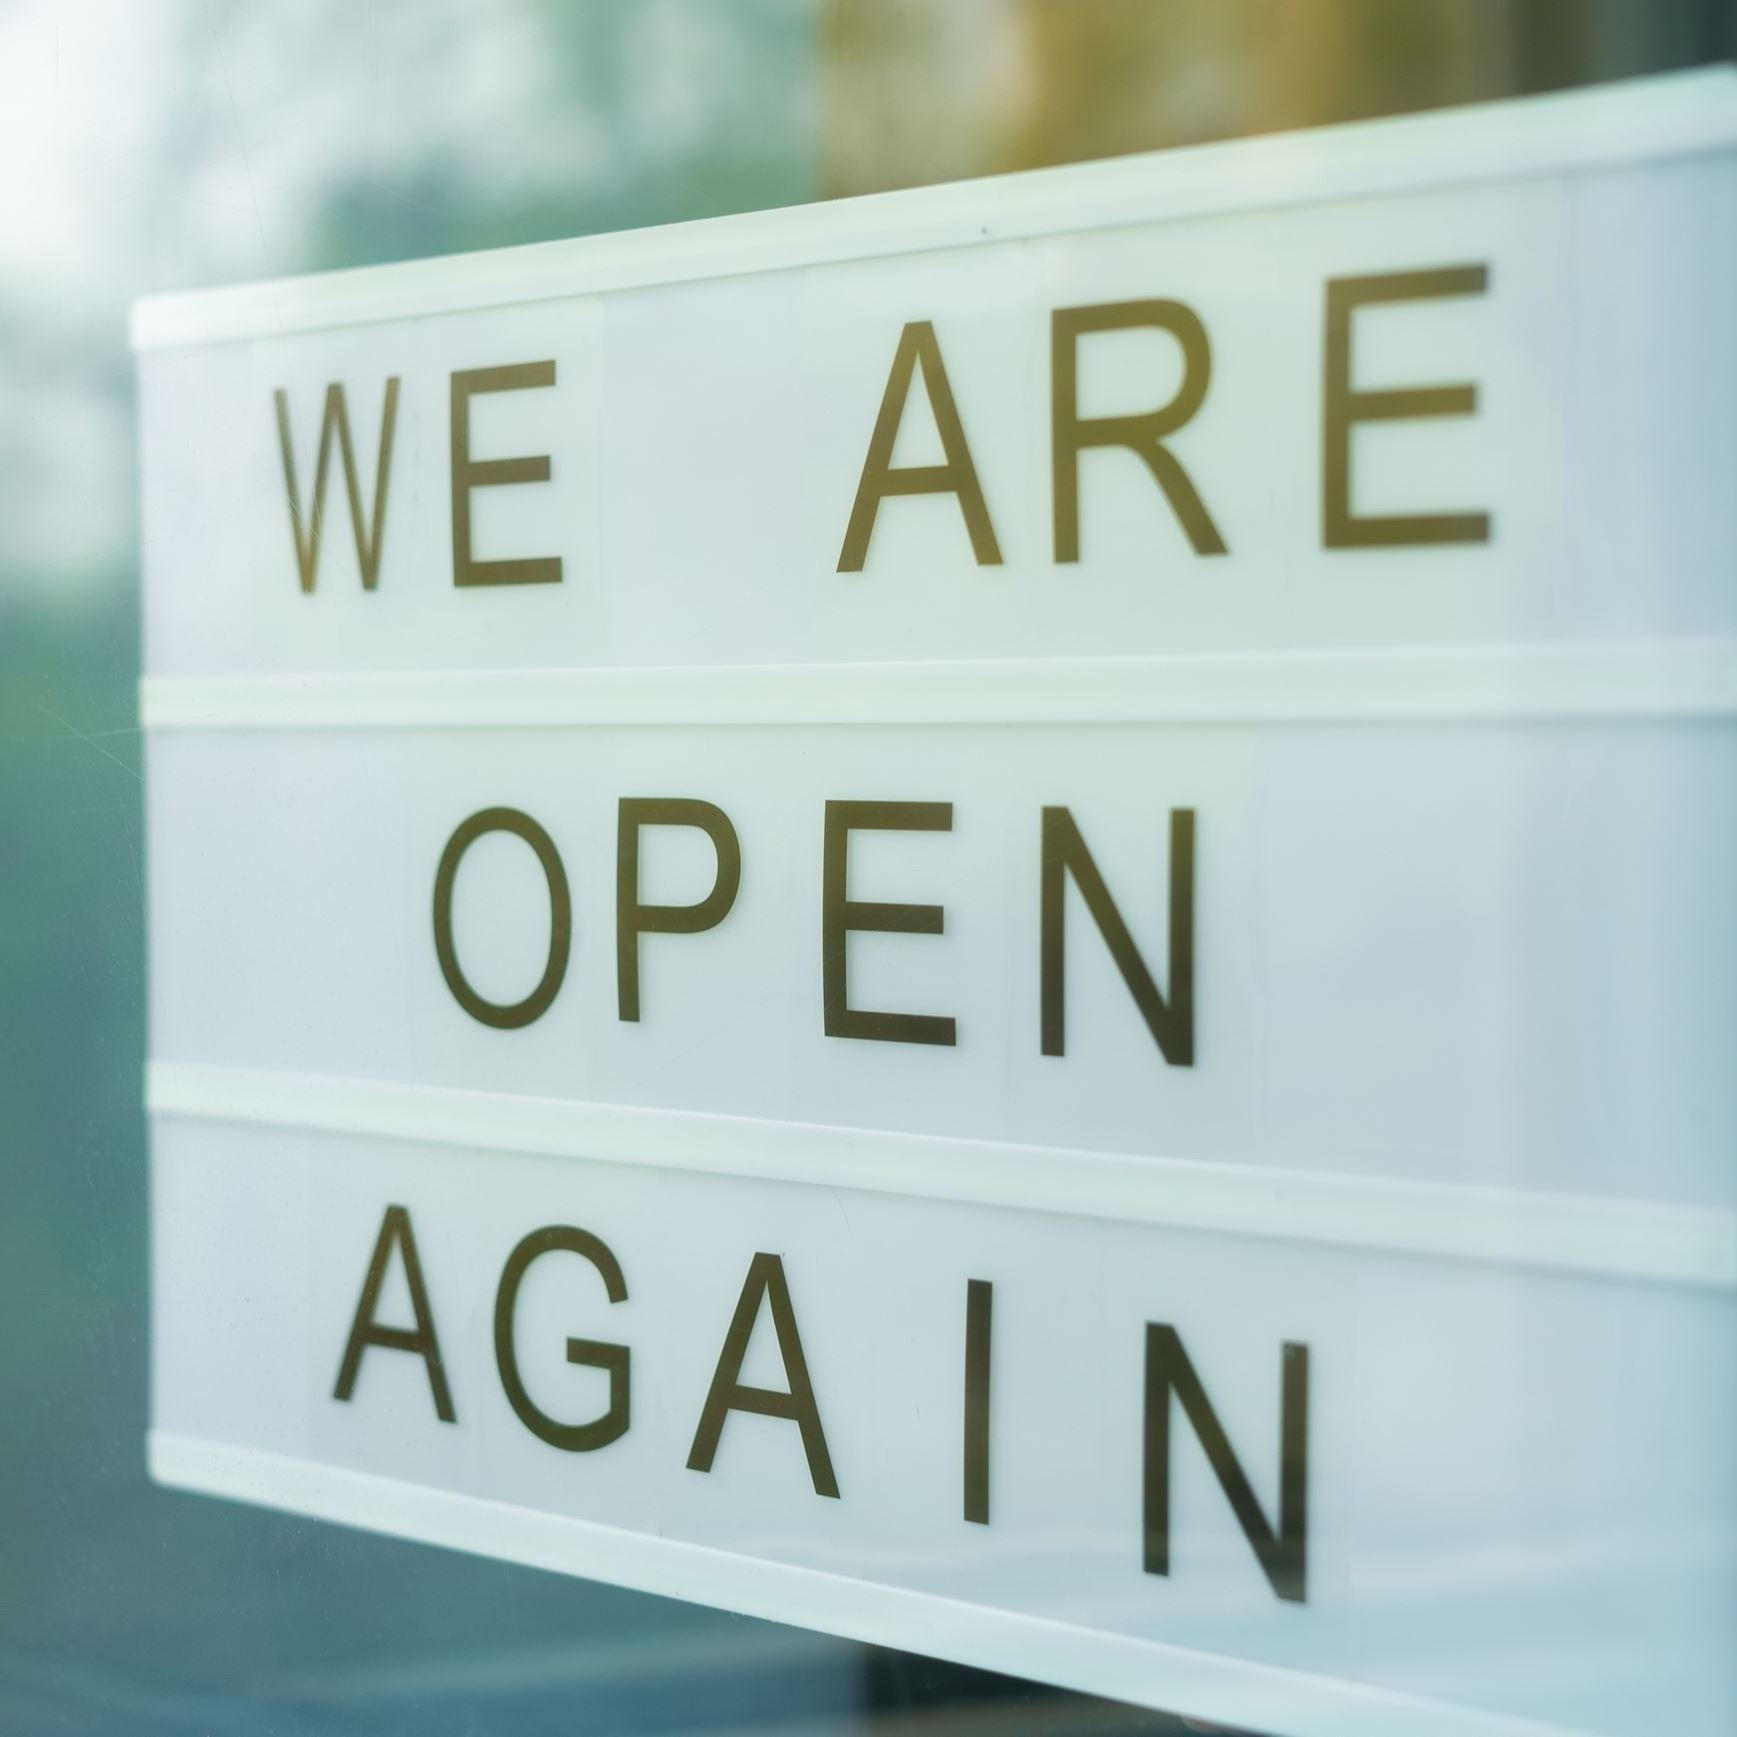 """We are open again"" sign hanging in window."